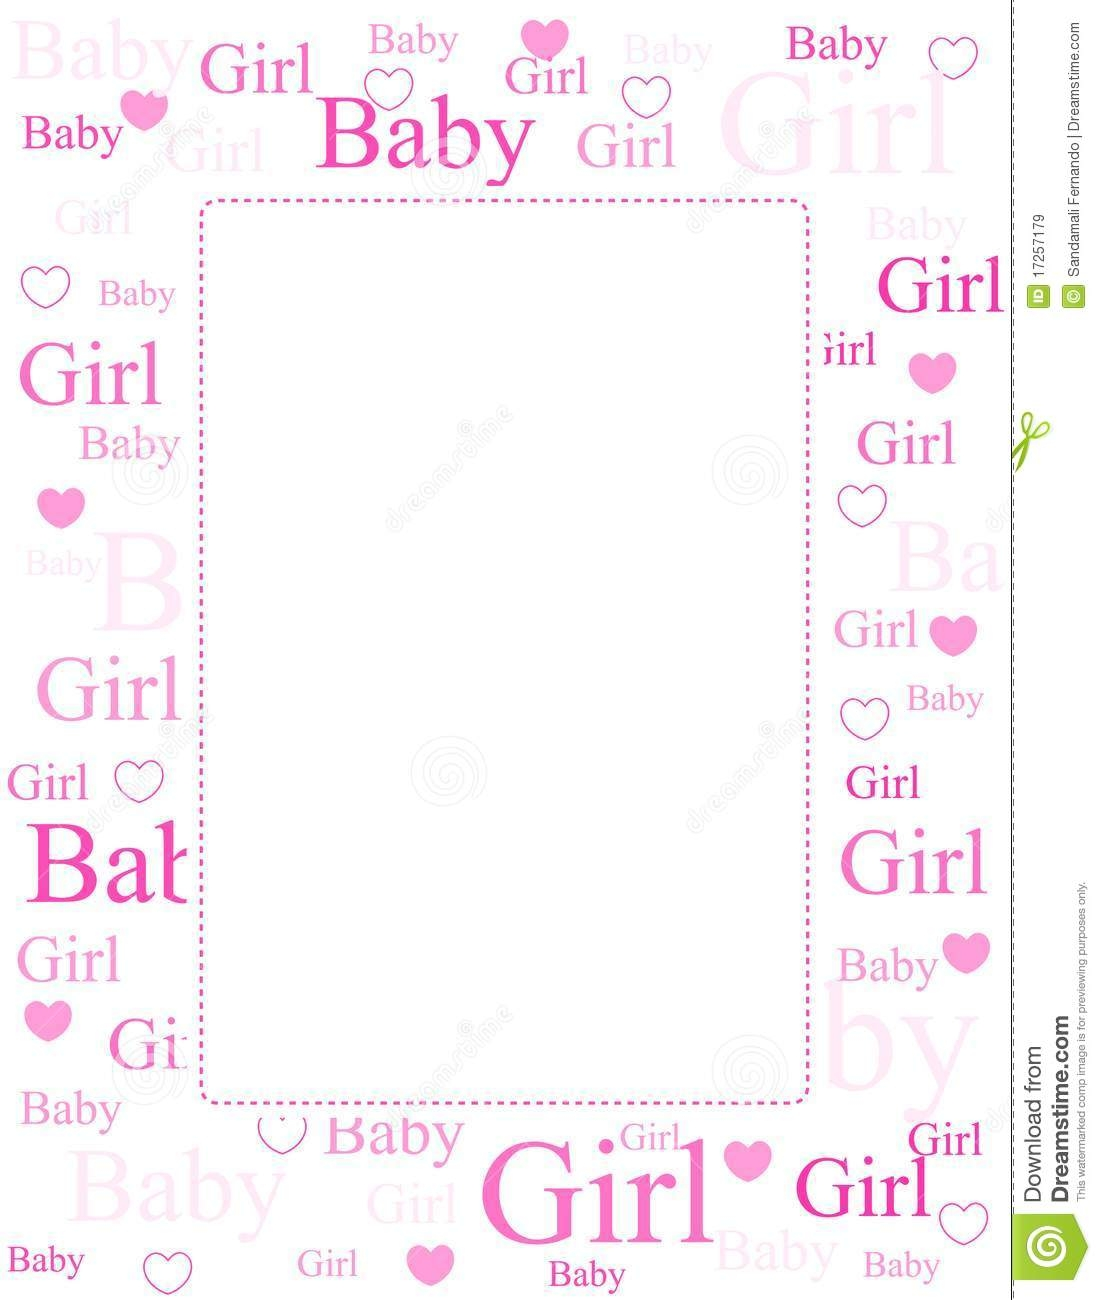 Clipground com images girl. Baby clipart border